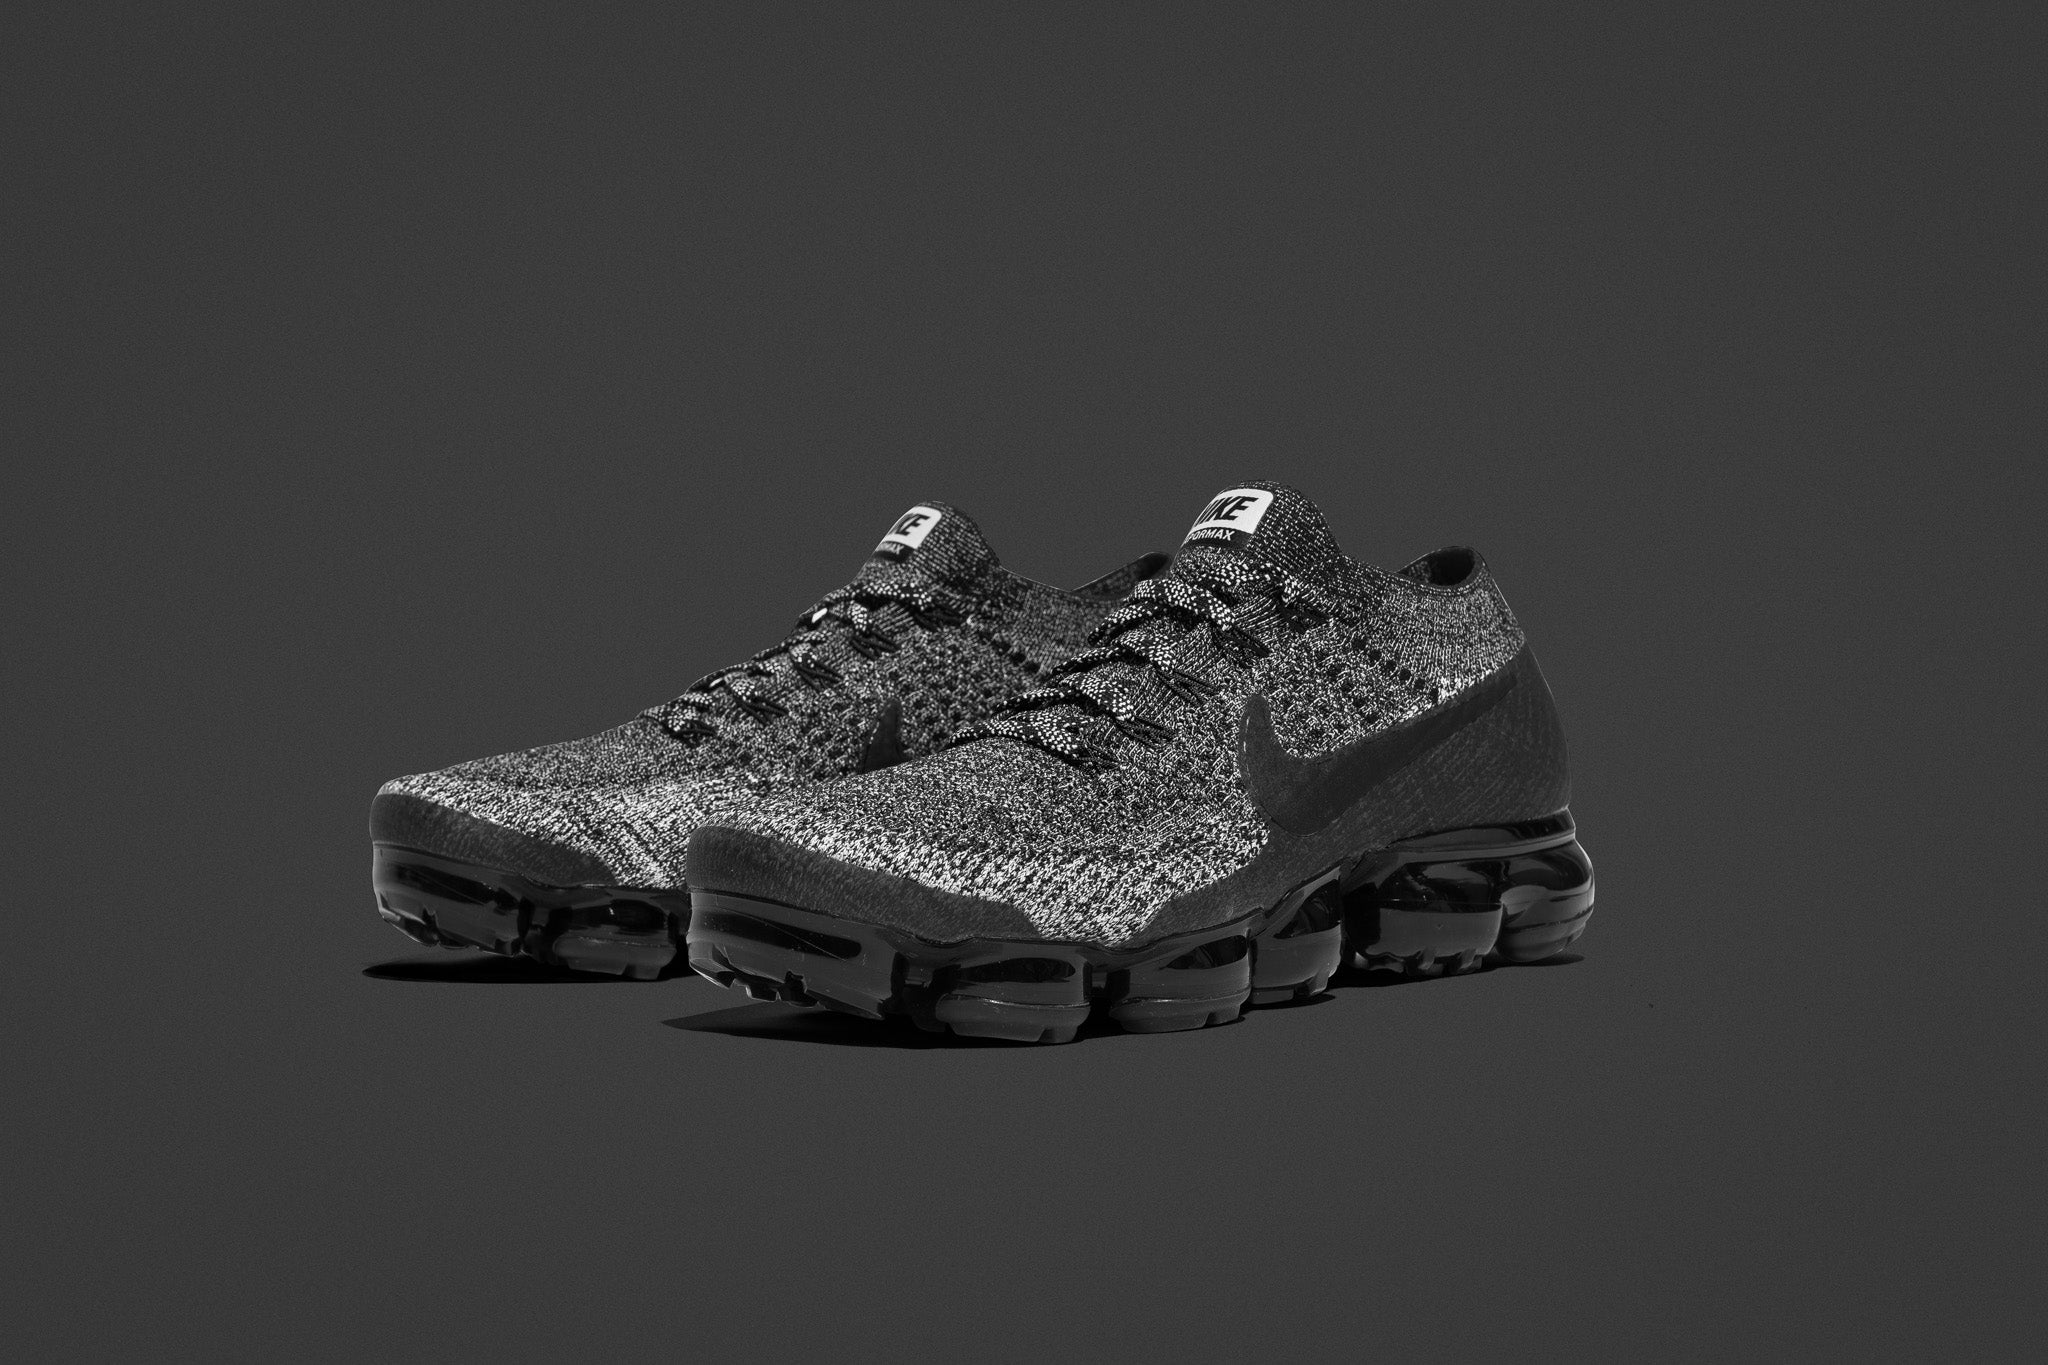 cd06dc60b5 ... the nike air vapormax flyknit oreo 2.0 shows off a cookies and cream  colourway with blacked